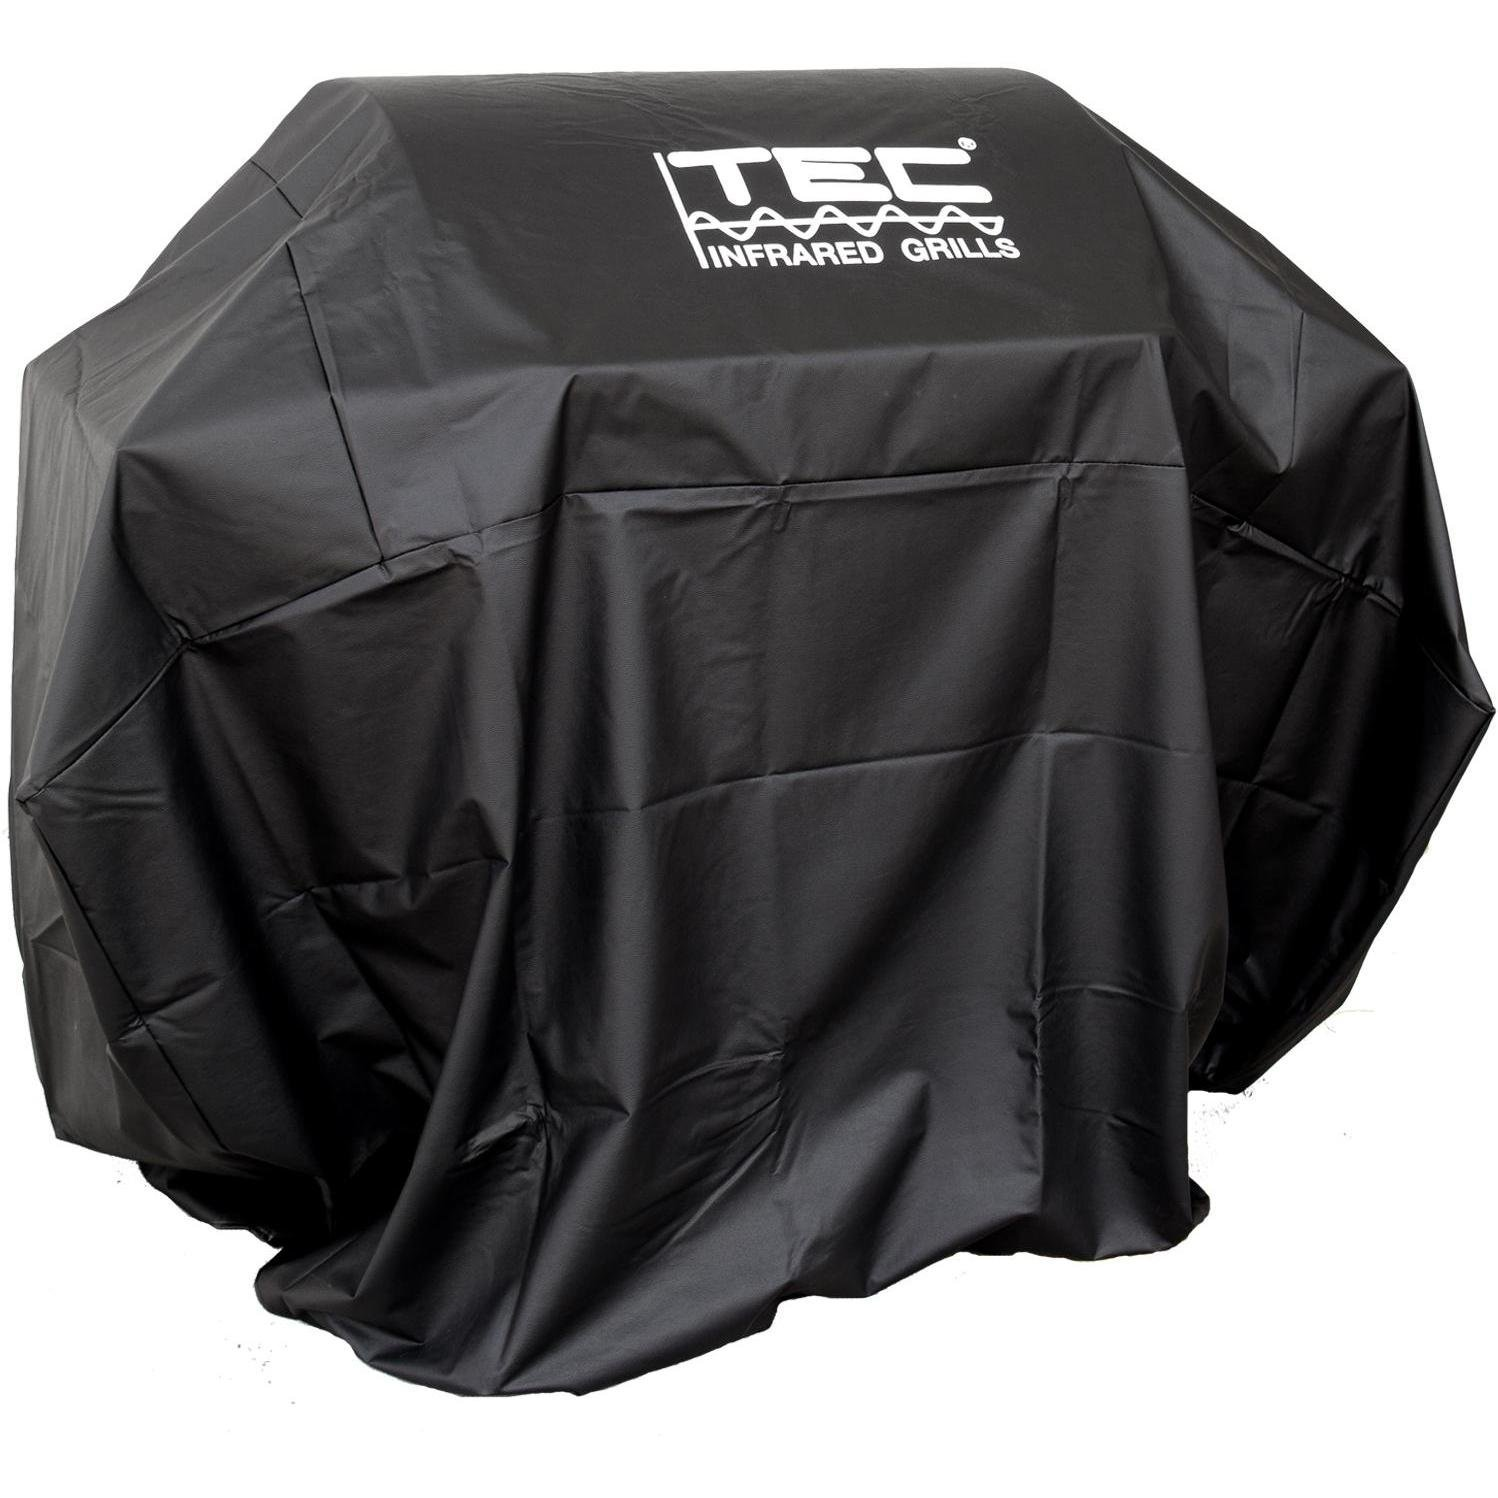 Tec Vinyl Grill Cover For Patio And Sterling Ii - On Cart With Two Side Shelves